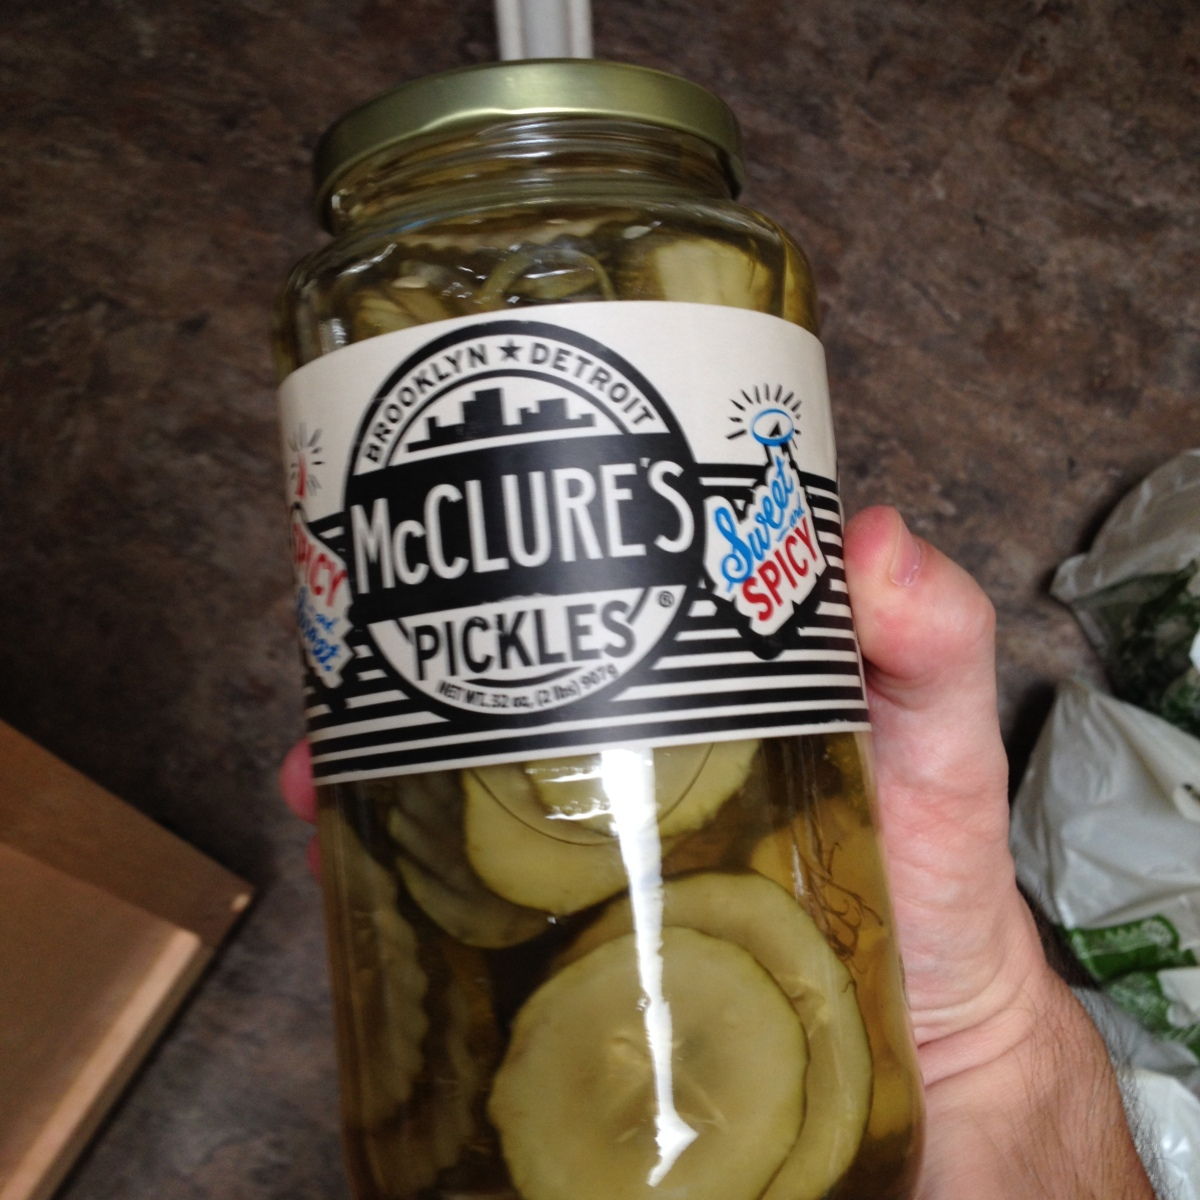 Hot and delicious, McClure's Pickles